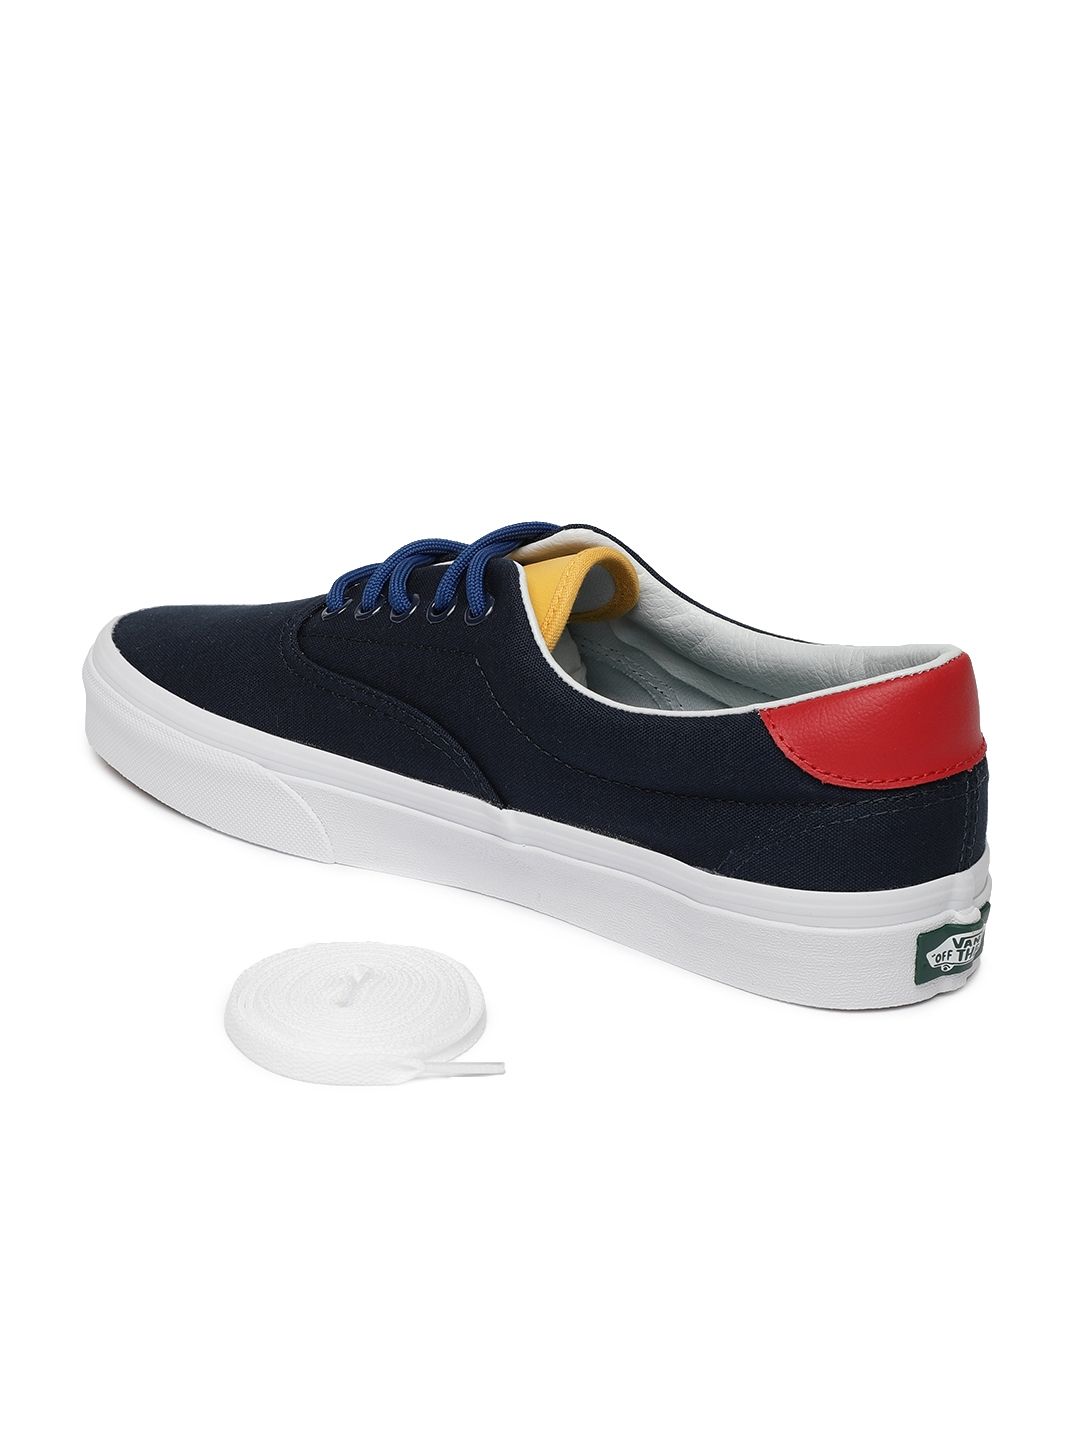 8884f0ea96 Buy Vans Unisex Navy Blue Era 59 Sneakers - Casual Shoes for Unisex ...